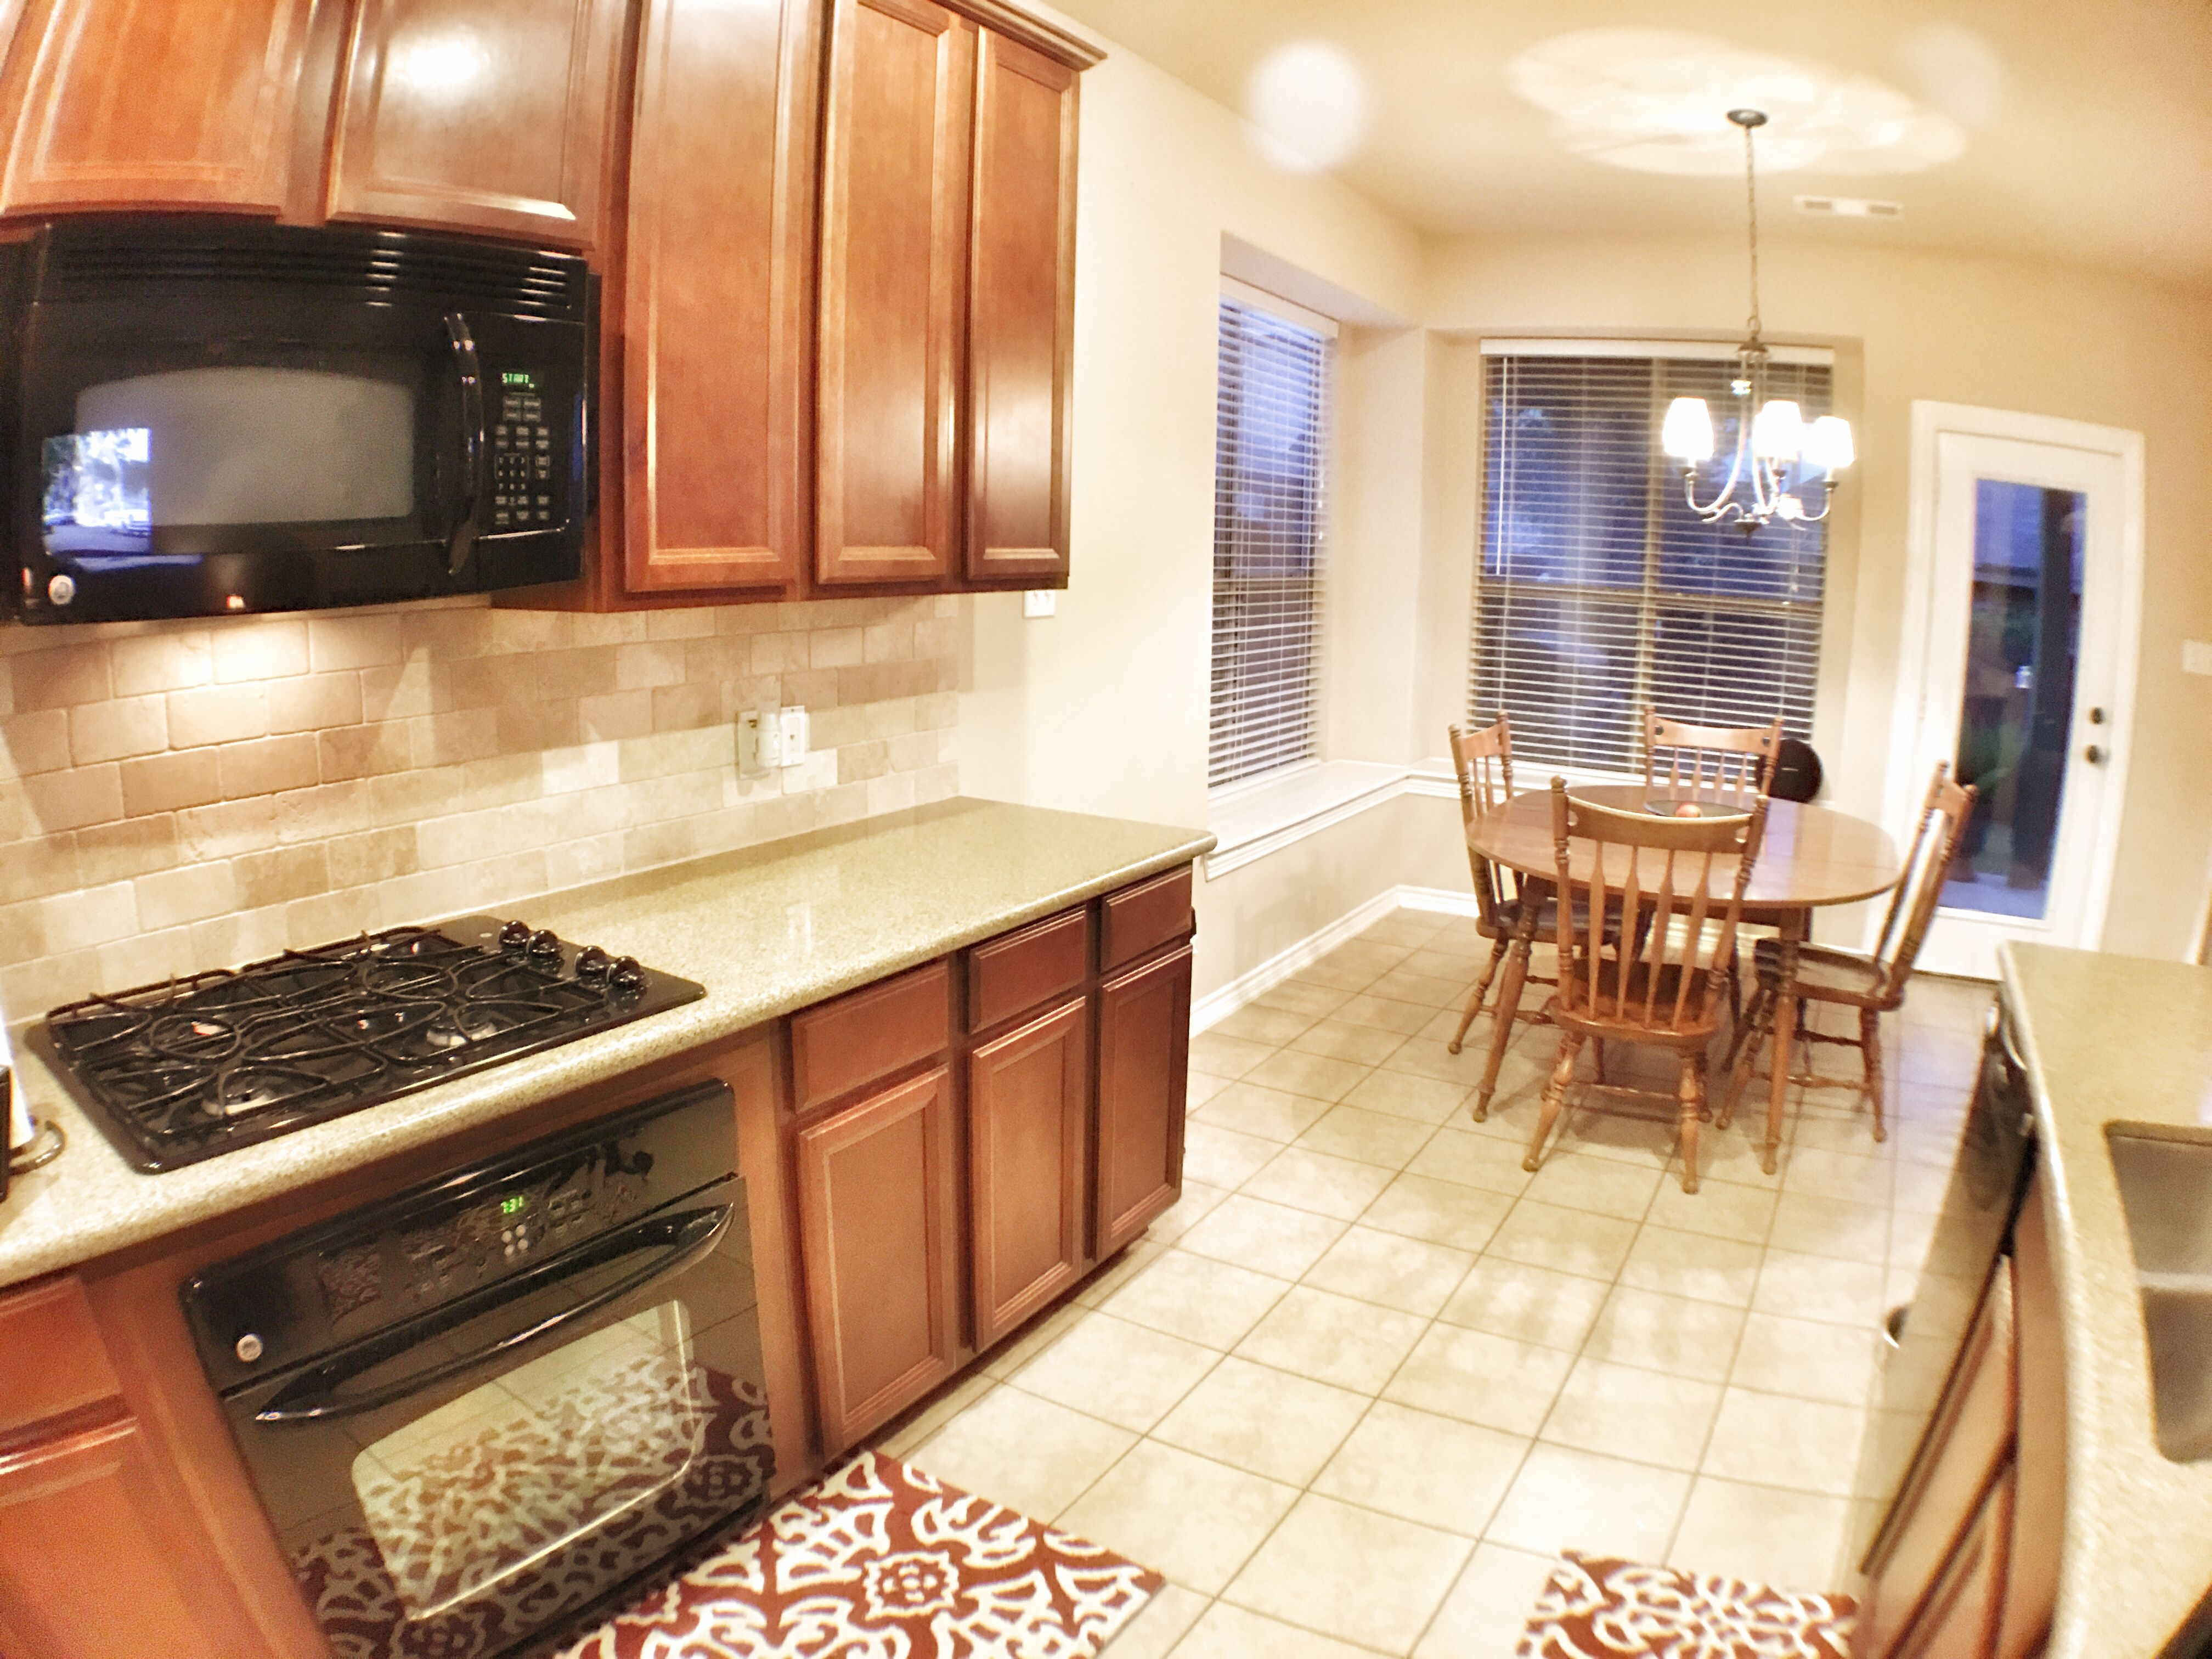 Kitchen in Fort Worth Home for sale with dining nook ...